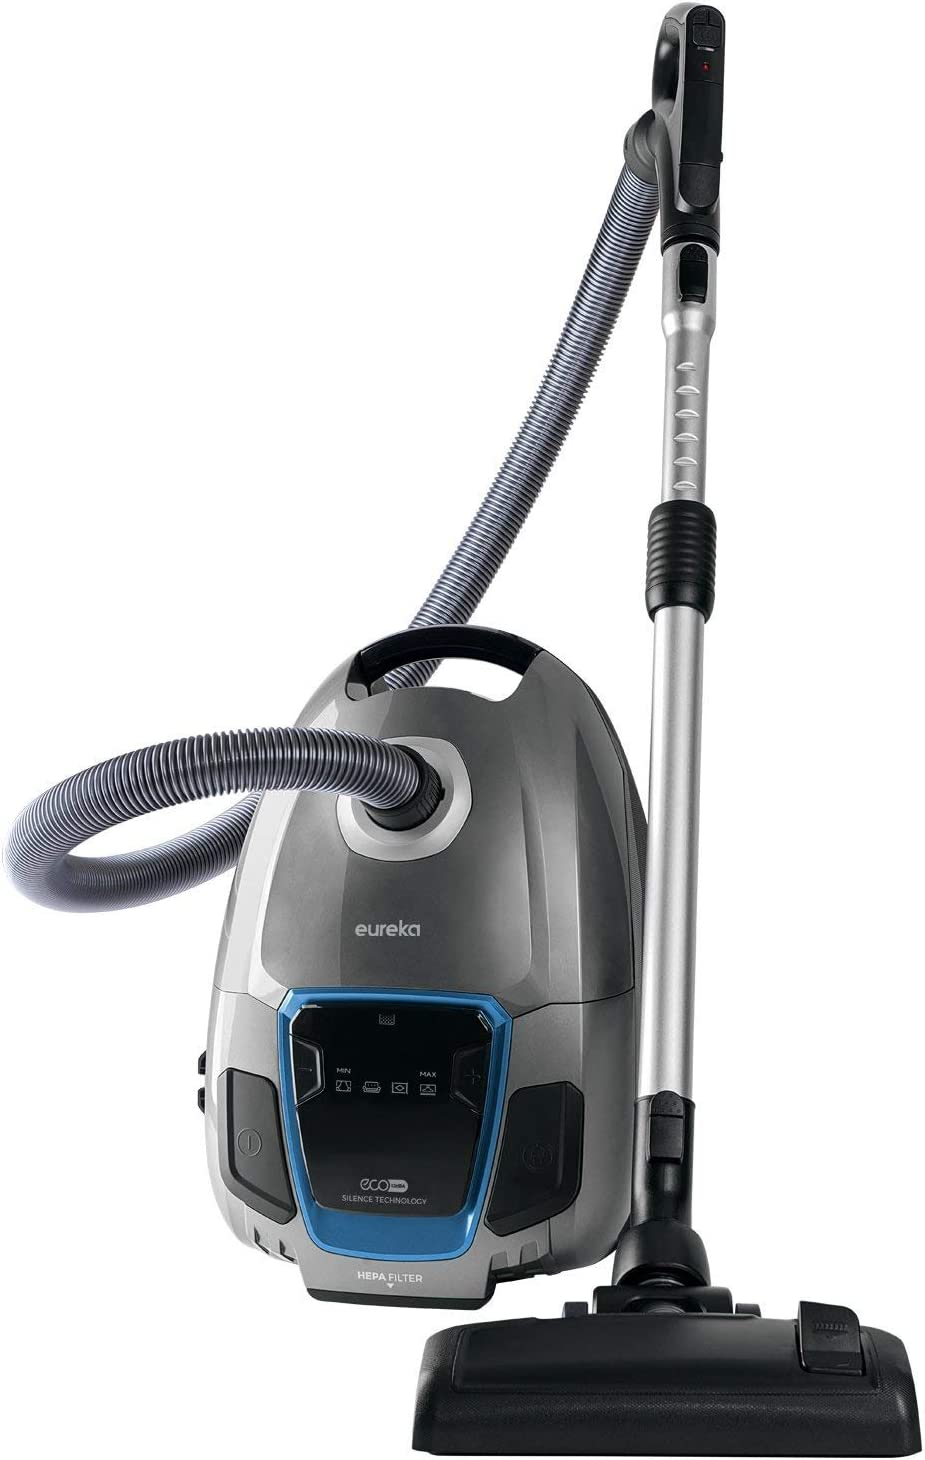 Eureka S600 SilentClean Cylinder Cleaner, Corded Powerful Compact Washable Hepa Filter Vacuum, 700W LED Display, 3.5L